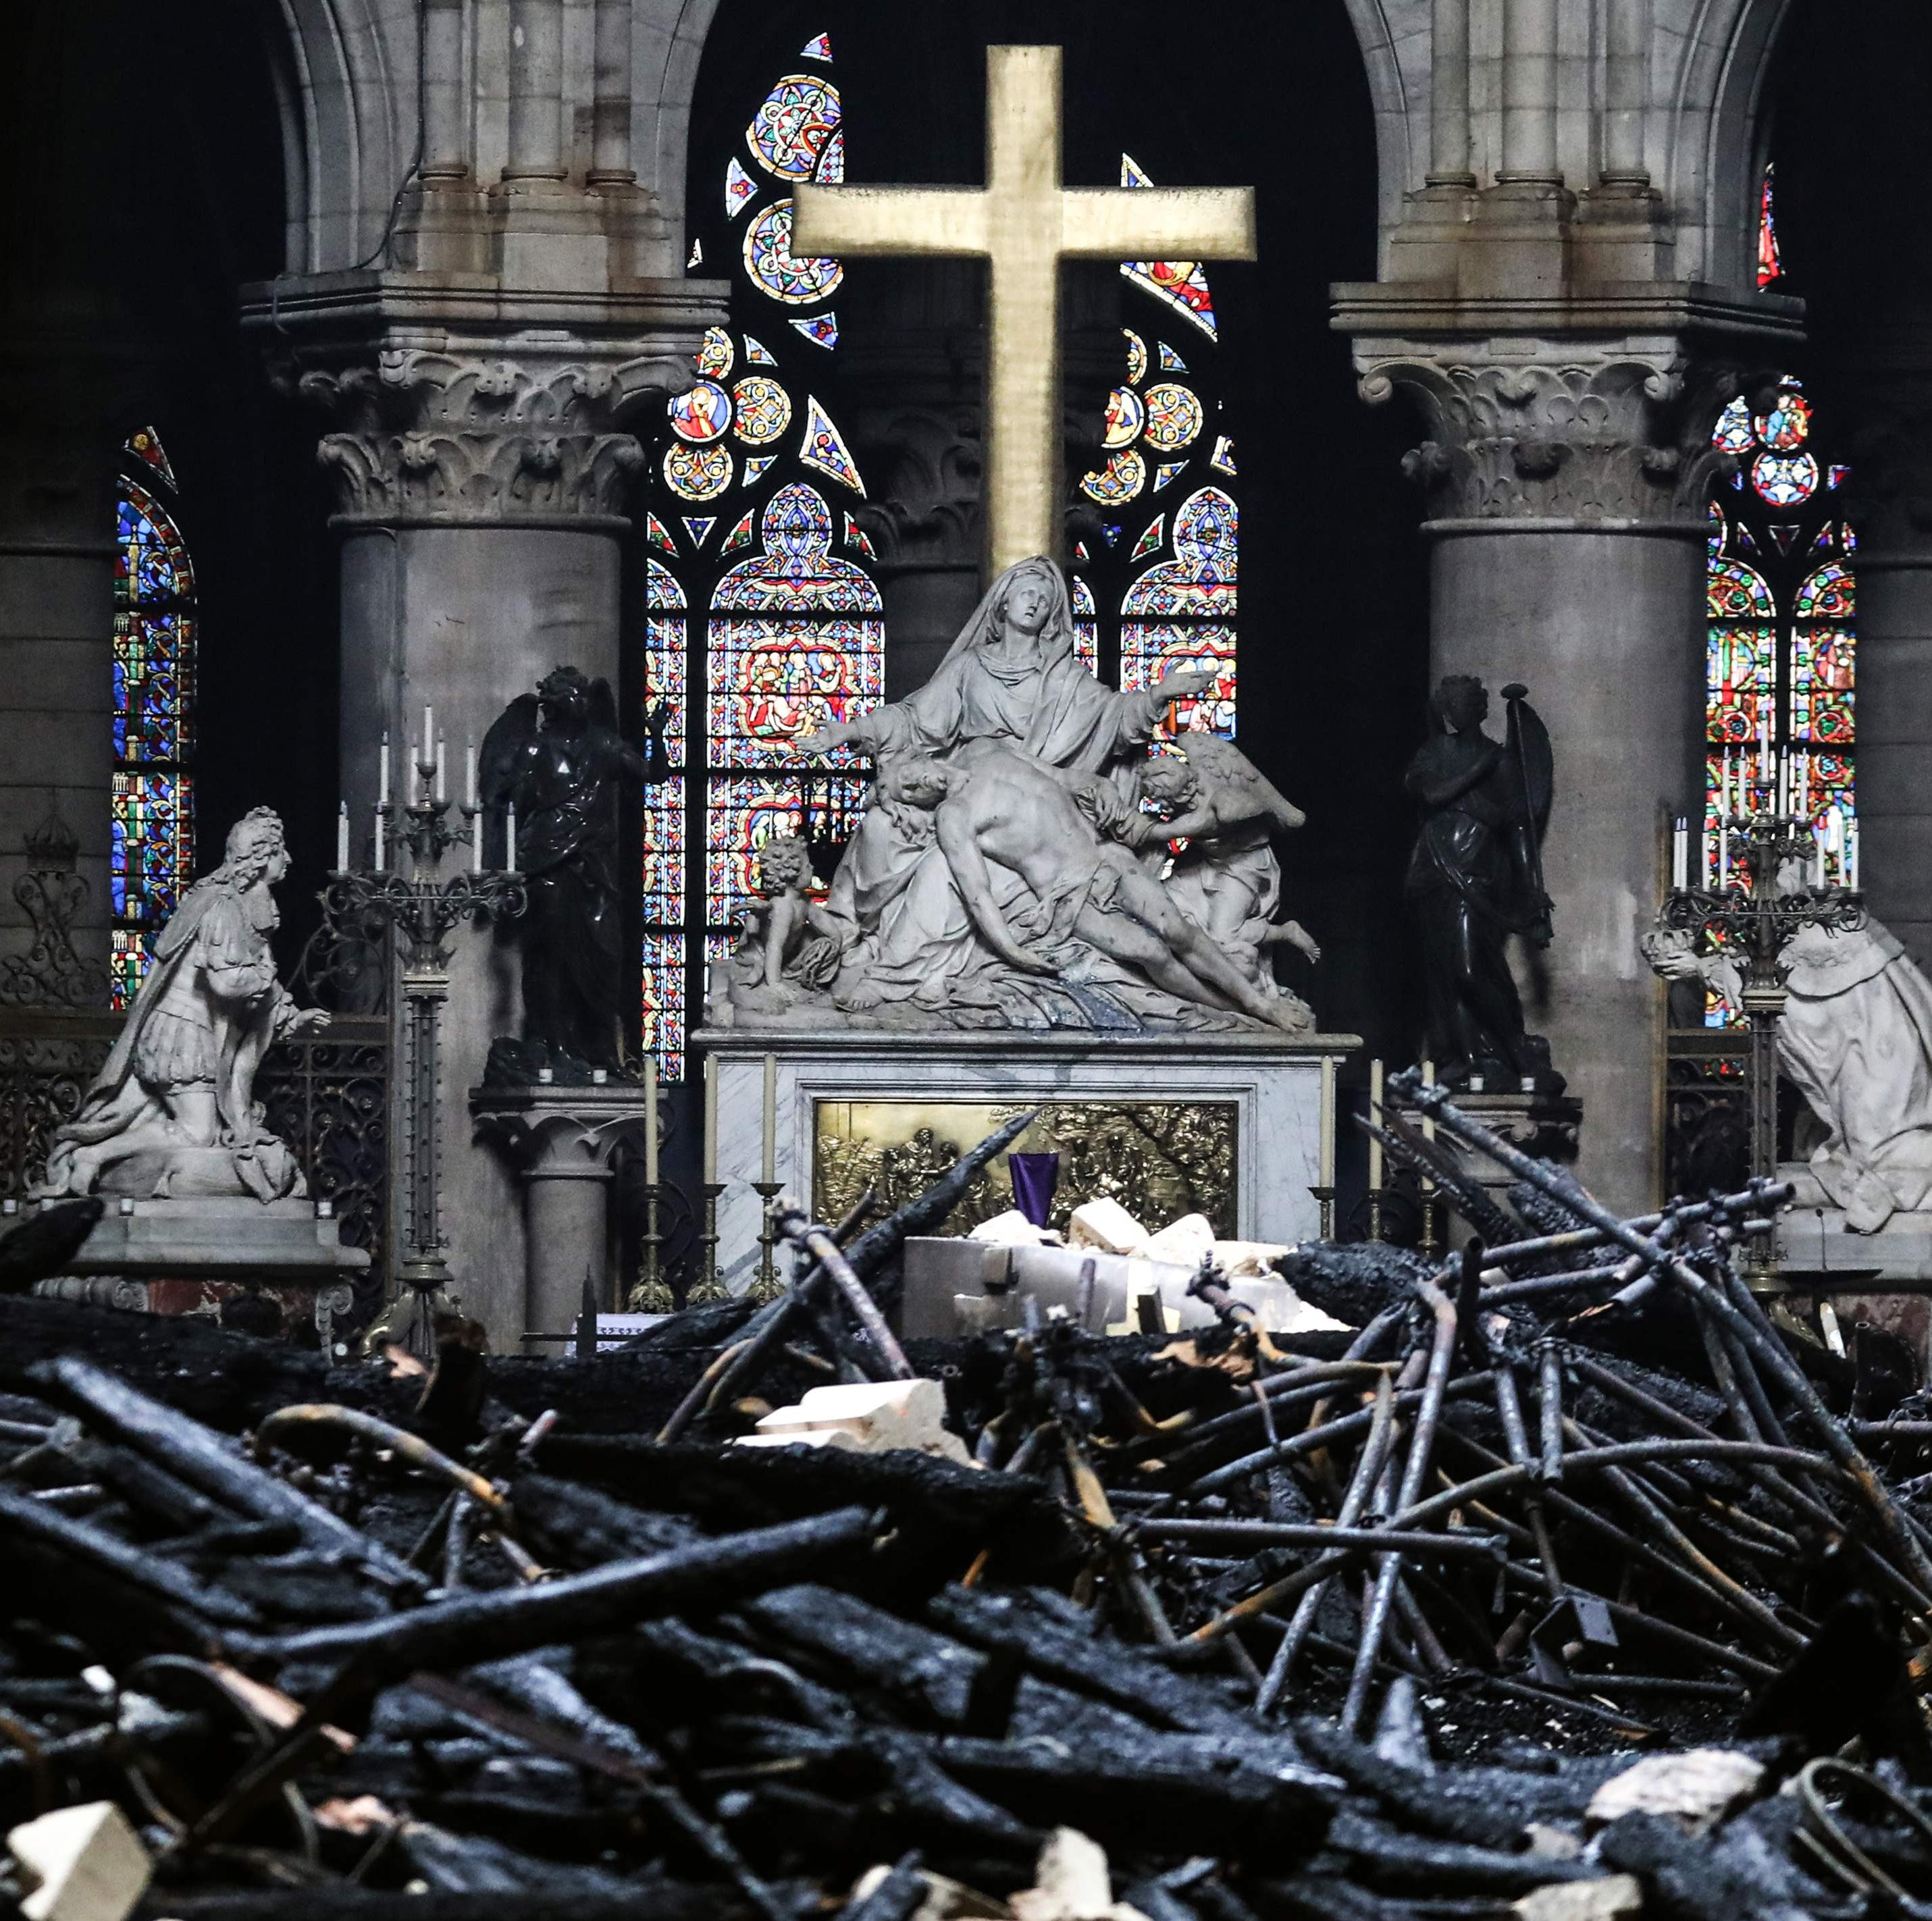 The main altar in Notre Dame Cathedral surrounded by charred debris on April 16, 2019. A white marble Pieta seems to have survived a devastating fire on April 15.